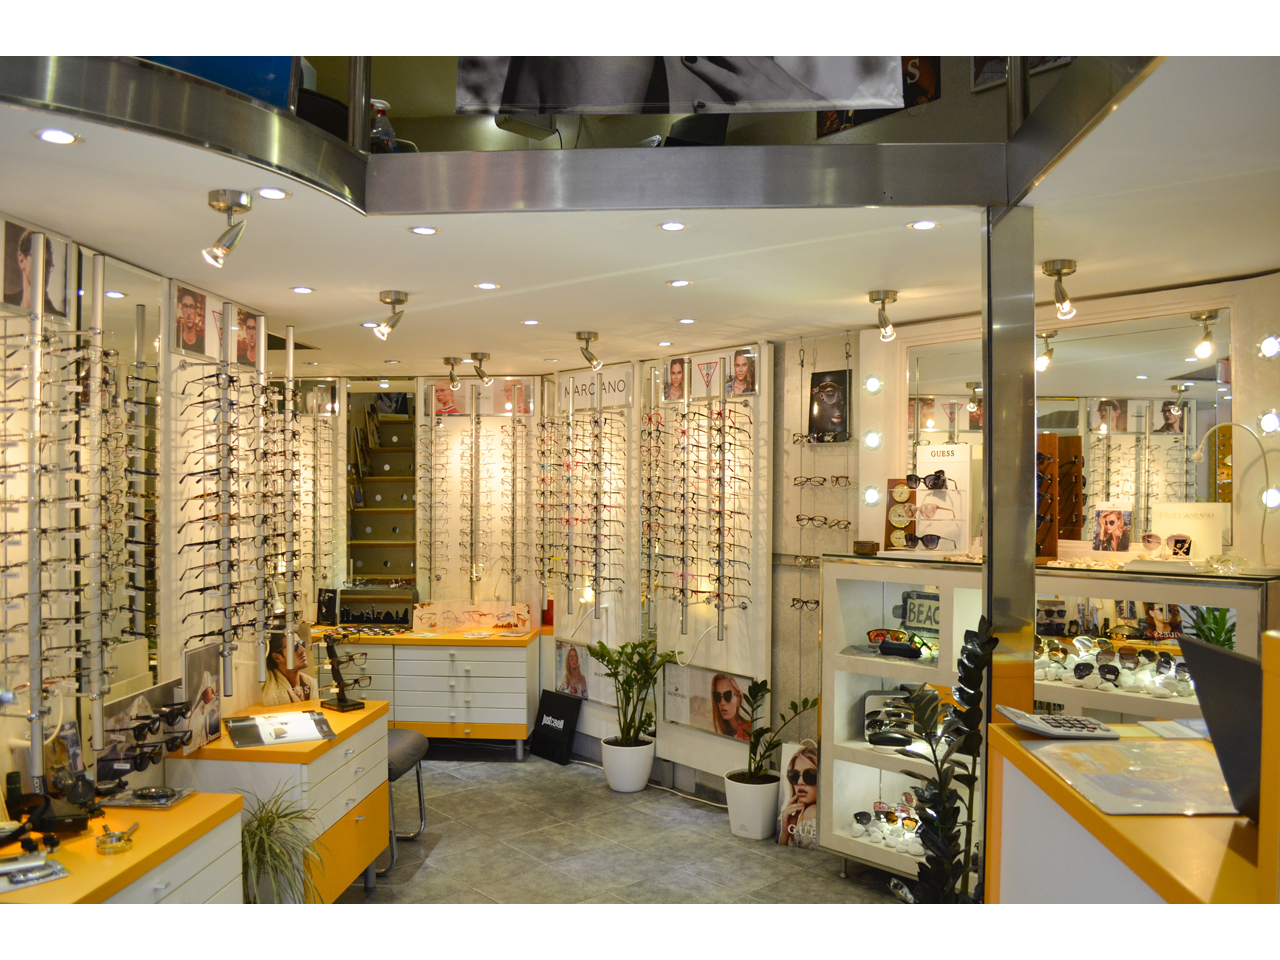 QUEEN OPTIC Optics Beograd